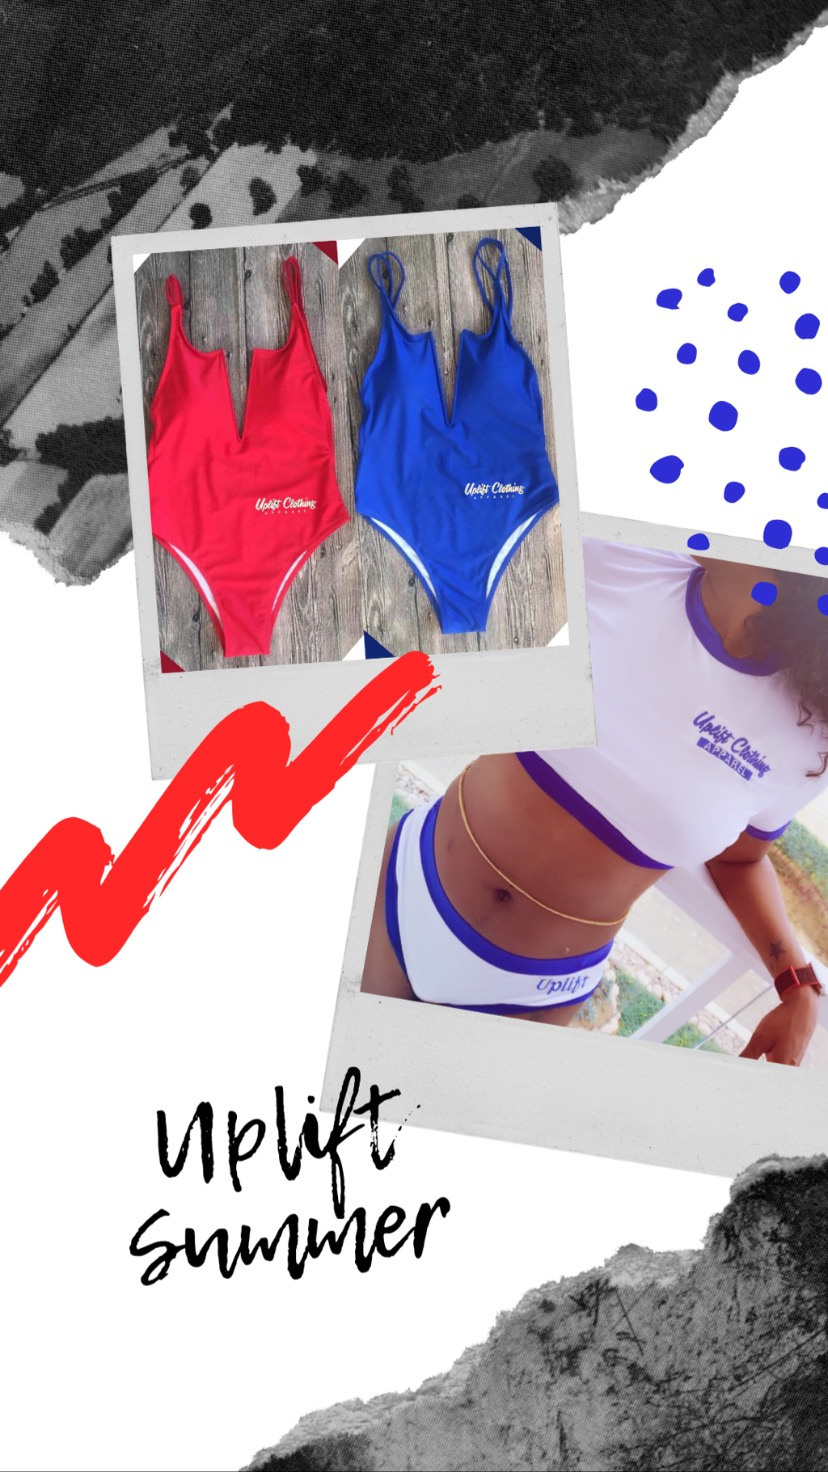 UPLIFT SUMMER - CHECK OUT OUR SWIMWEAR LINE